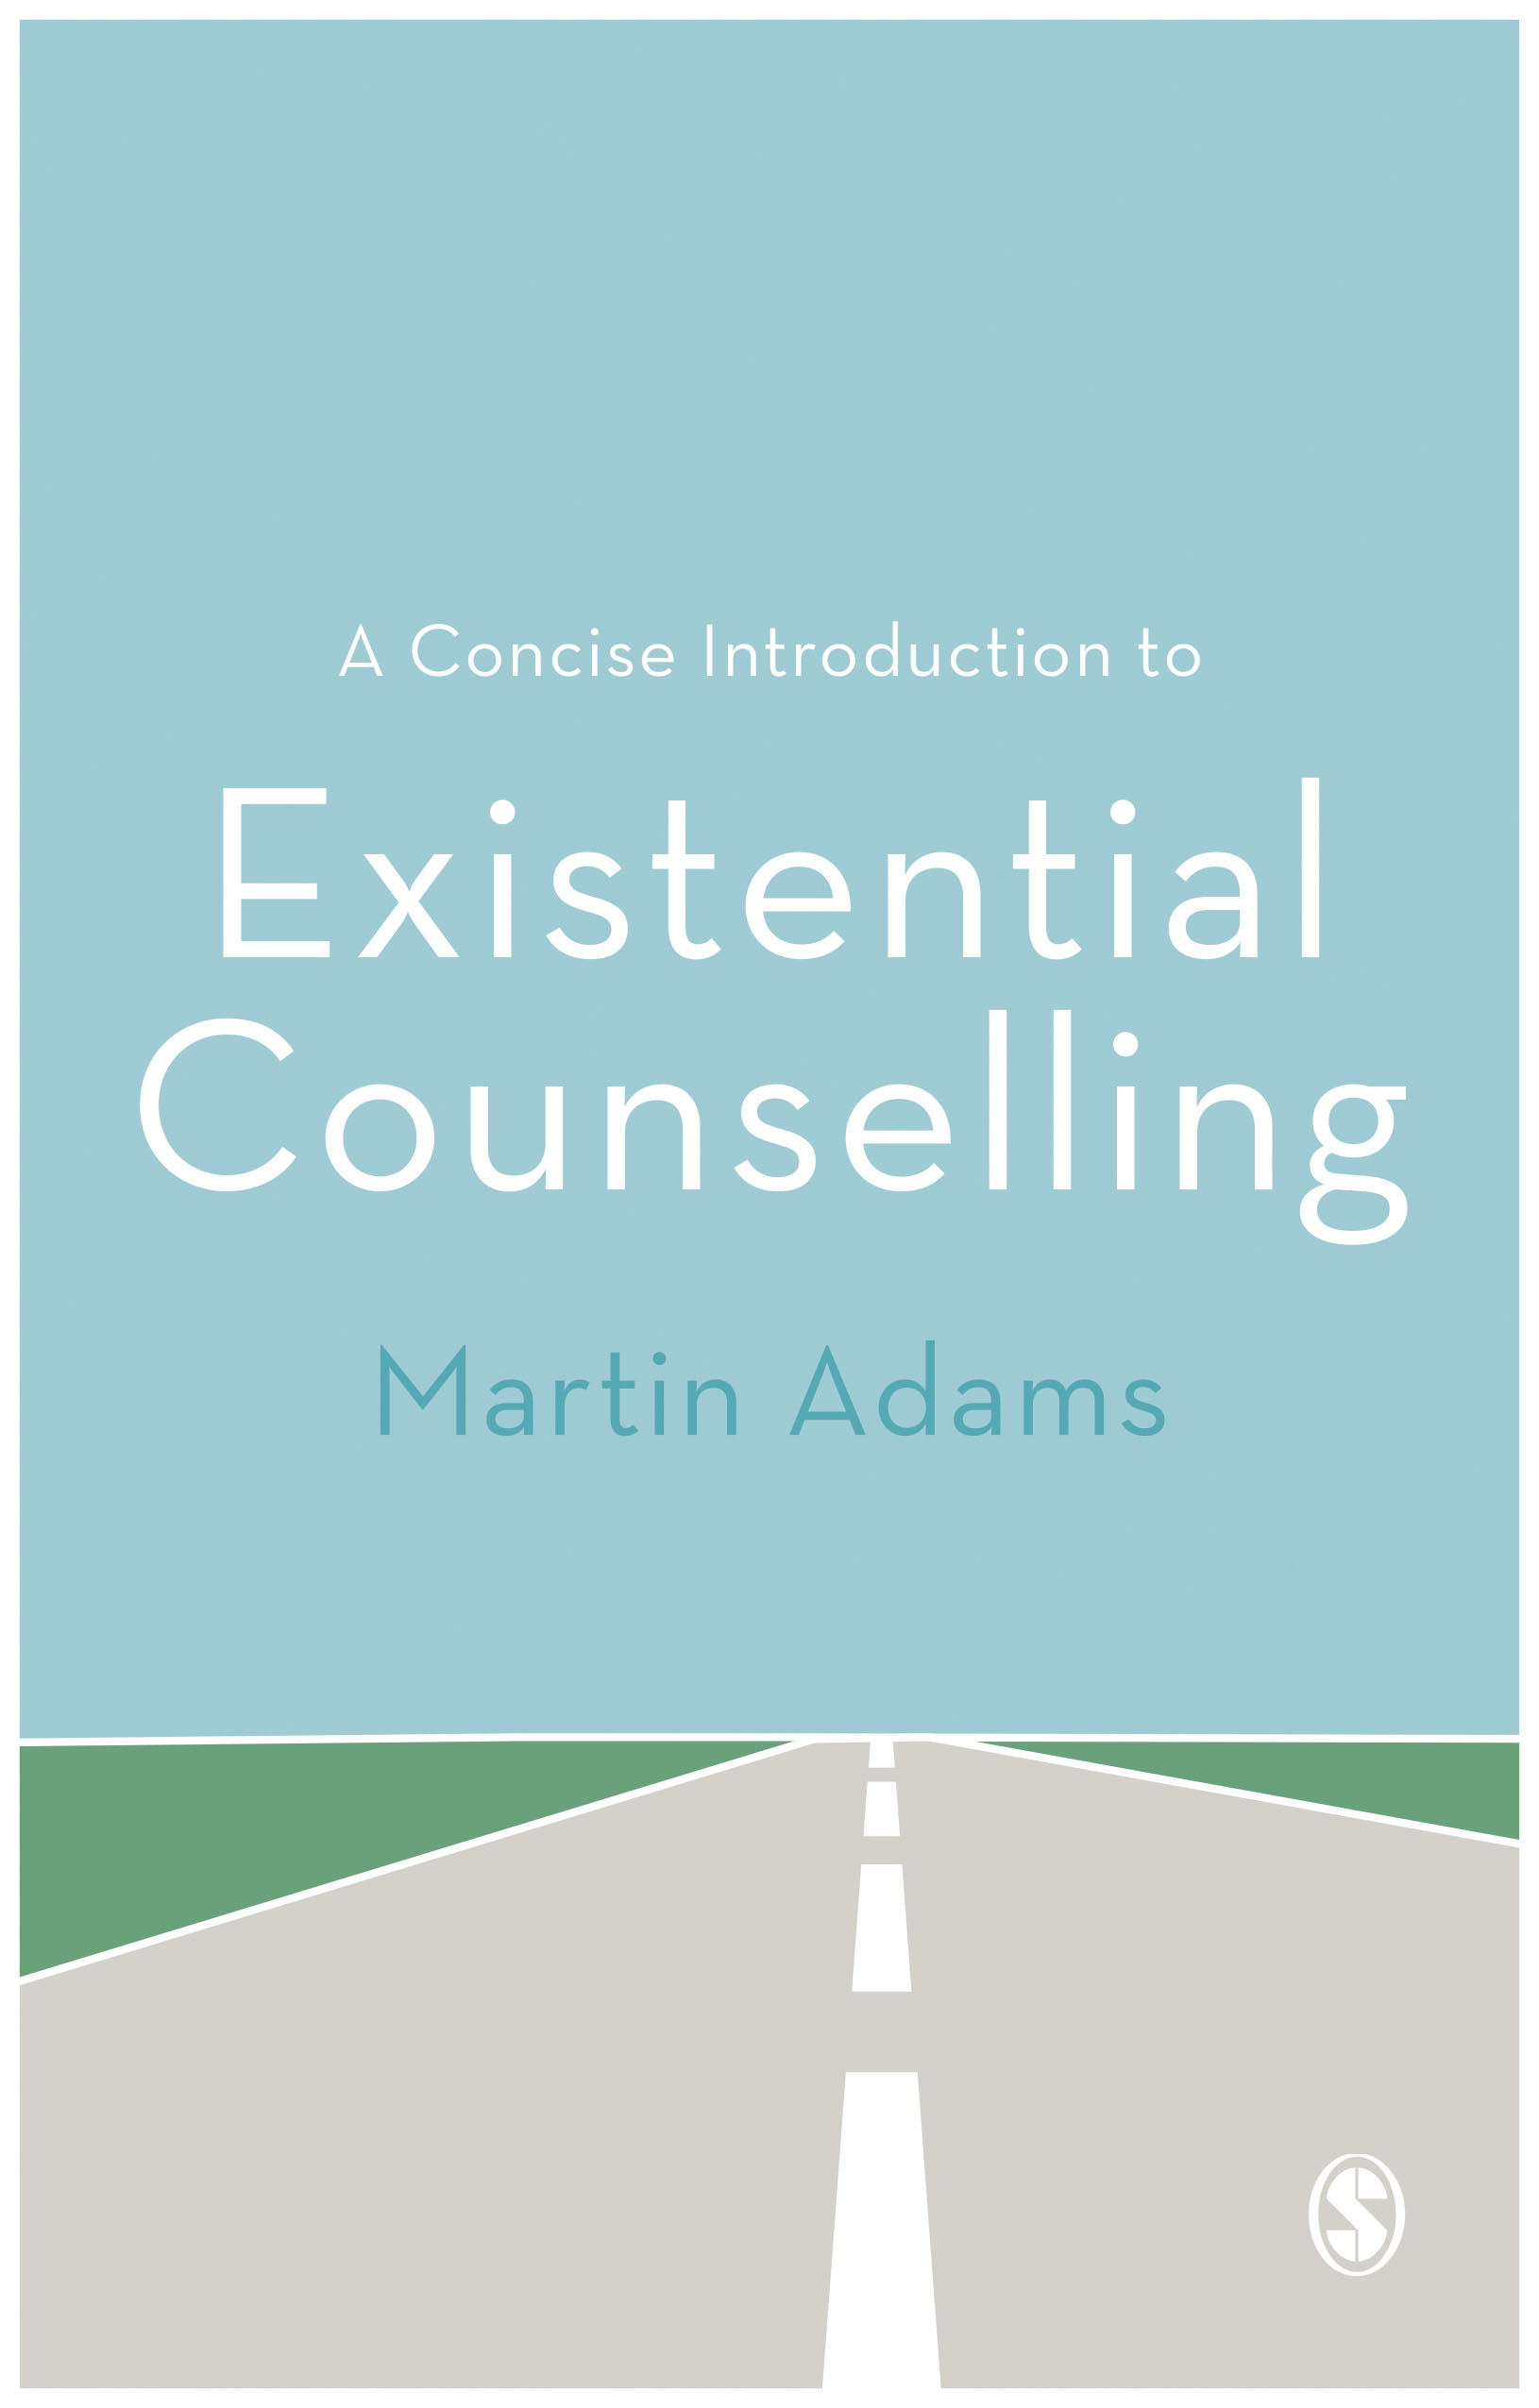 A Concise Introduction to Existential Counselling book cover